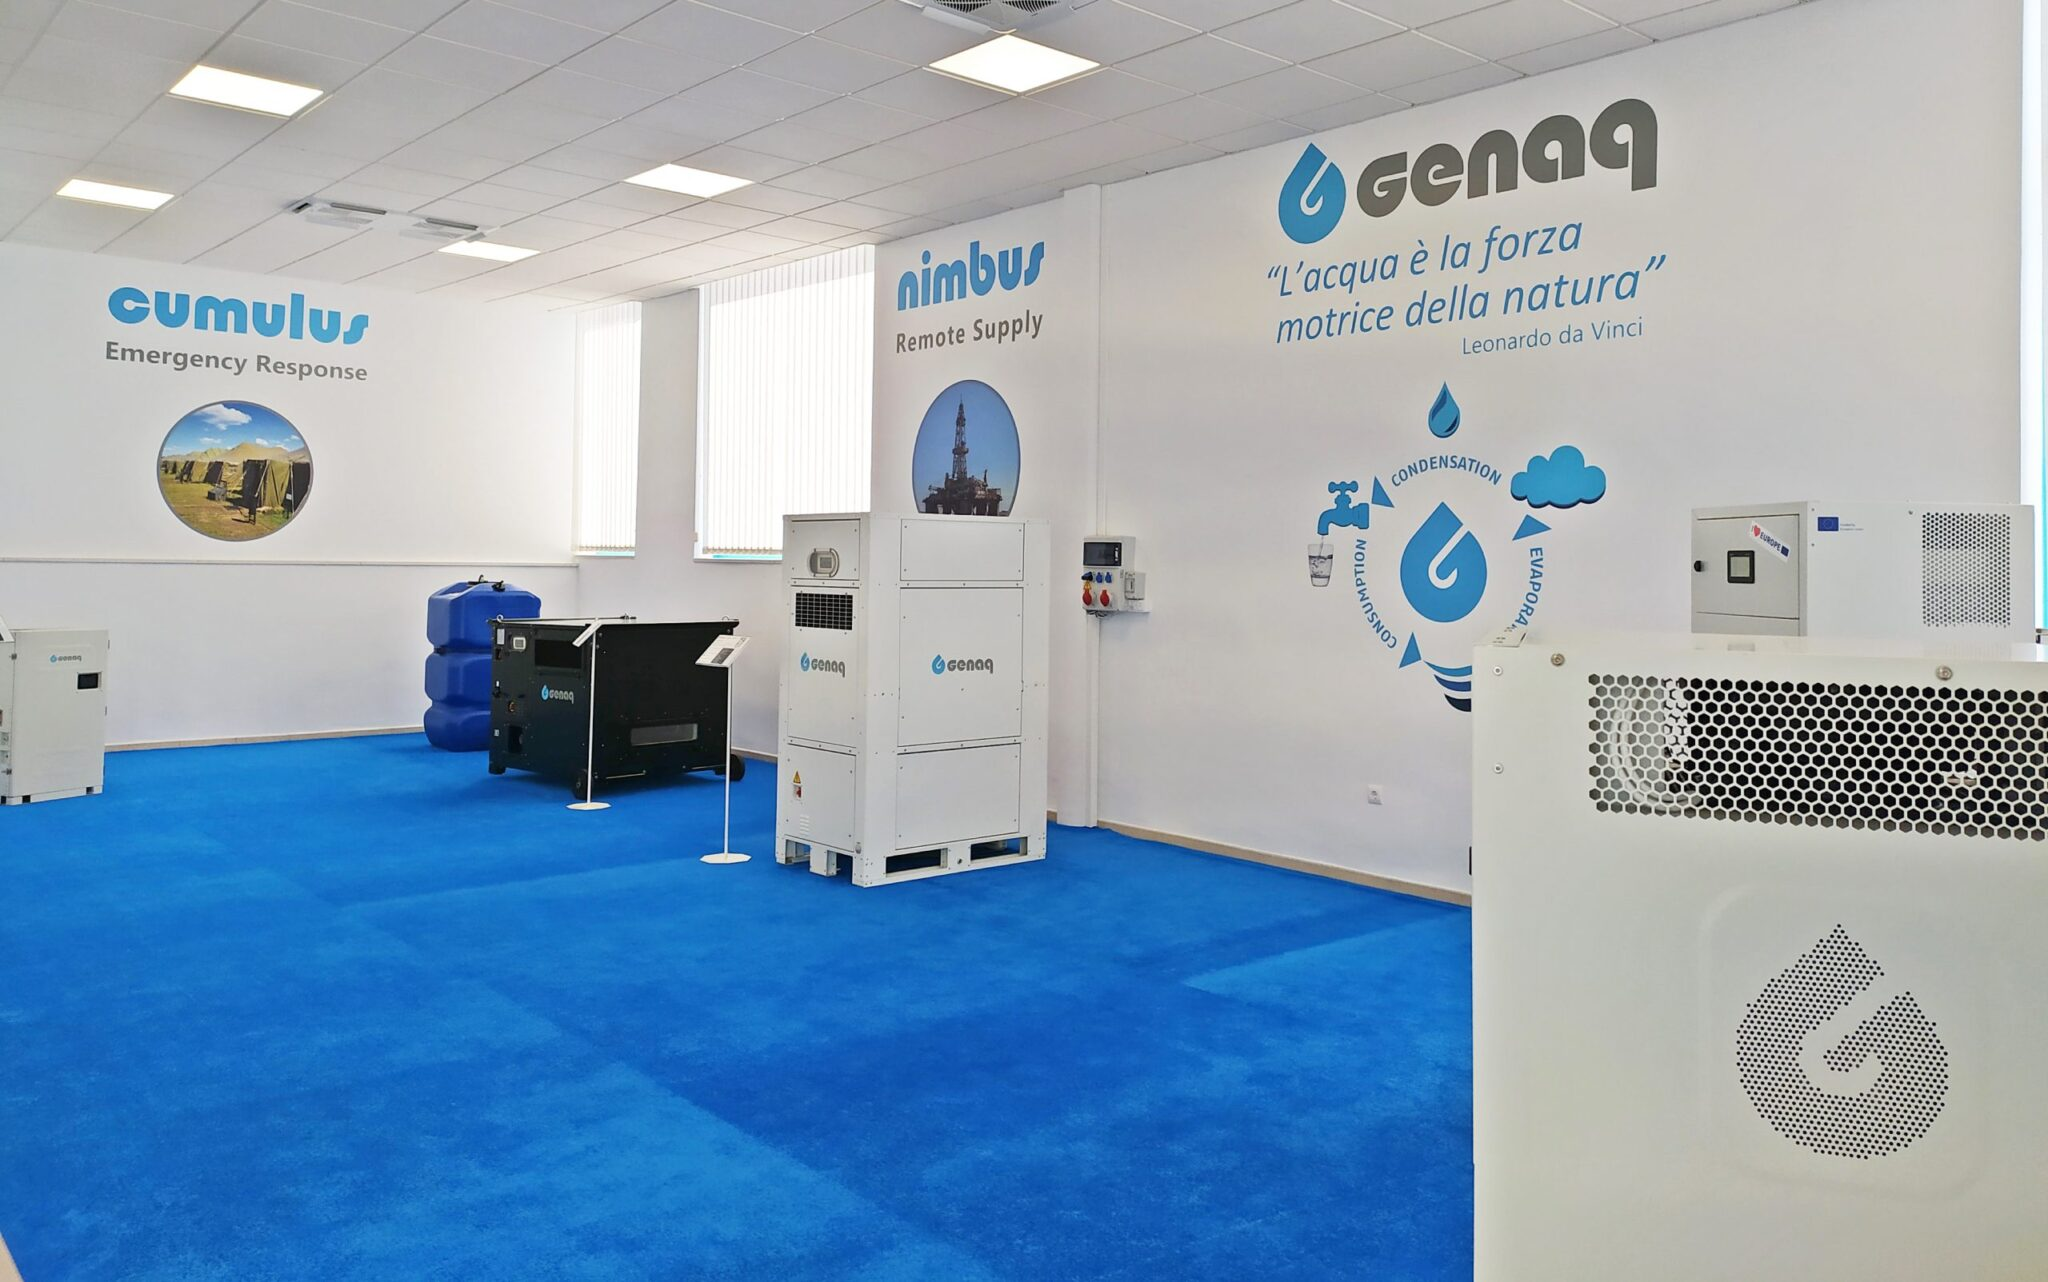 Where can we apply GENAQ technology scaled - ¿Dónde podemos aplicar la tecnología de GENAQ?